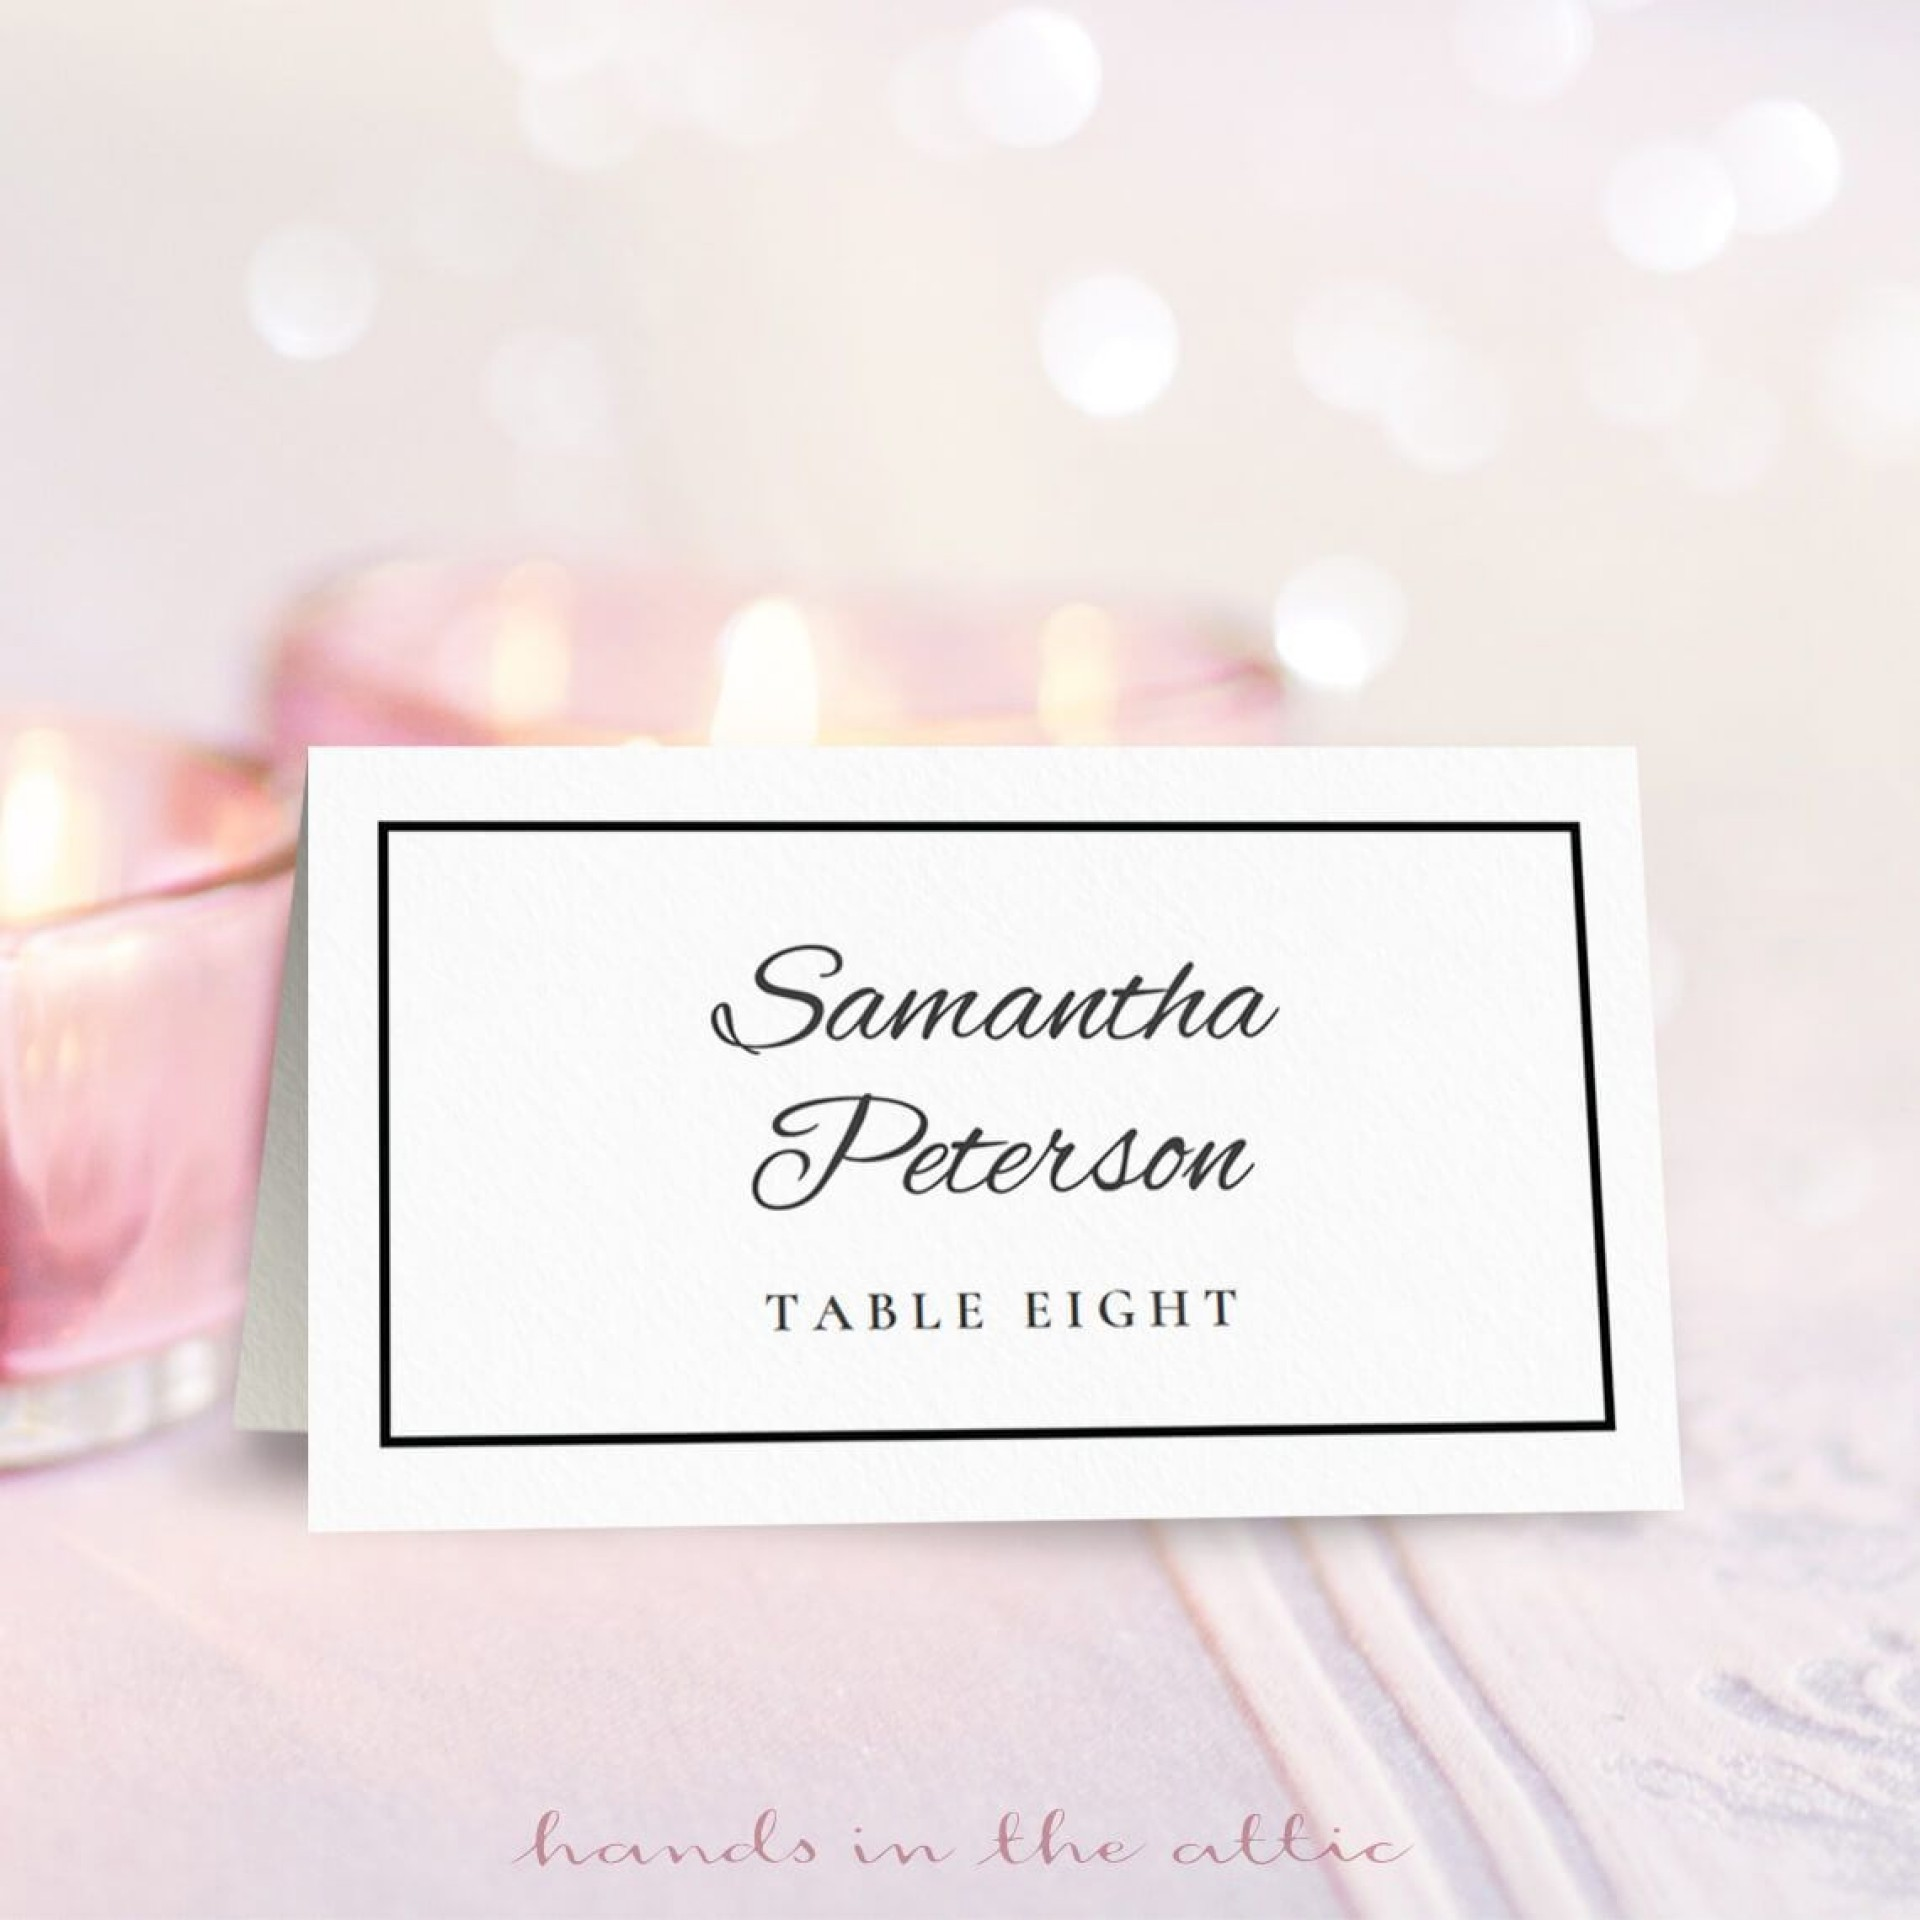 003 Impressive Name Place Card Template Free Download Highest Clarity  Psd Vector1920